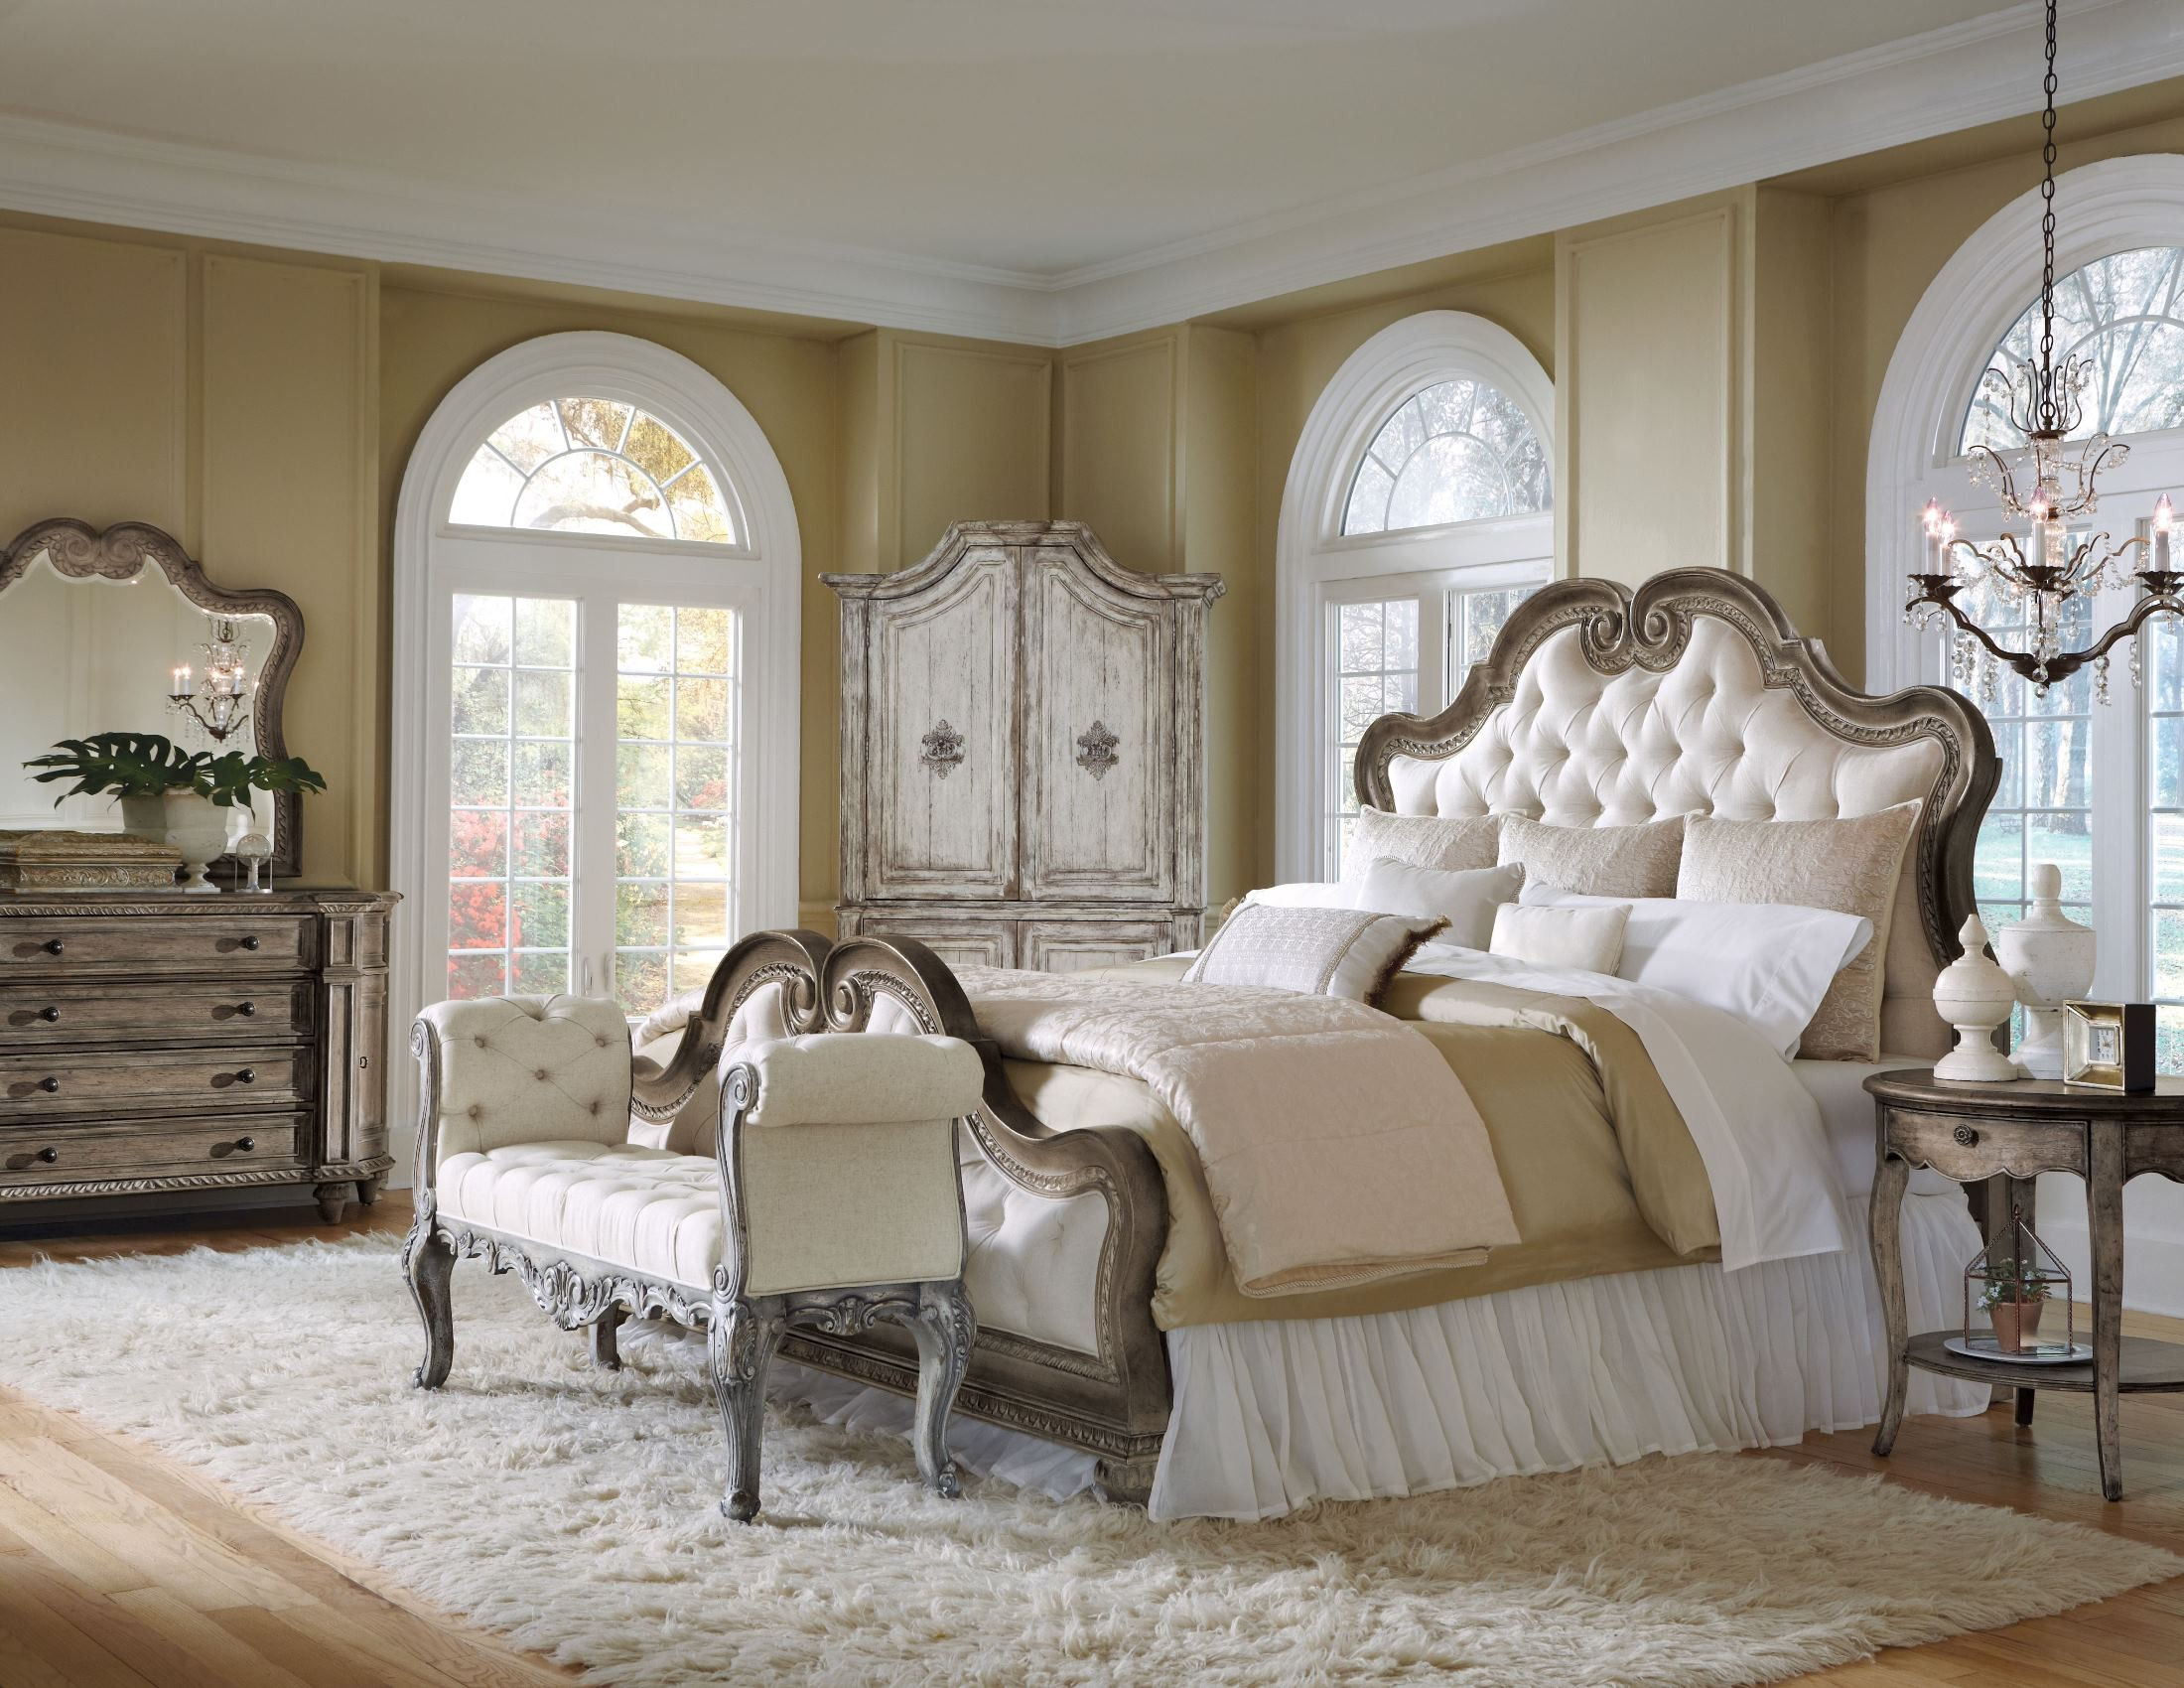 arabella upholstered bedroom set from pulaski 211170 211171 211172 coleman furniture. Black Bedroom Furniture Sets. Home Design Ideas